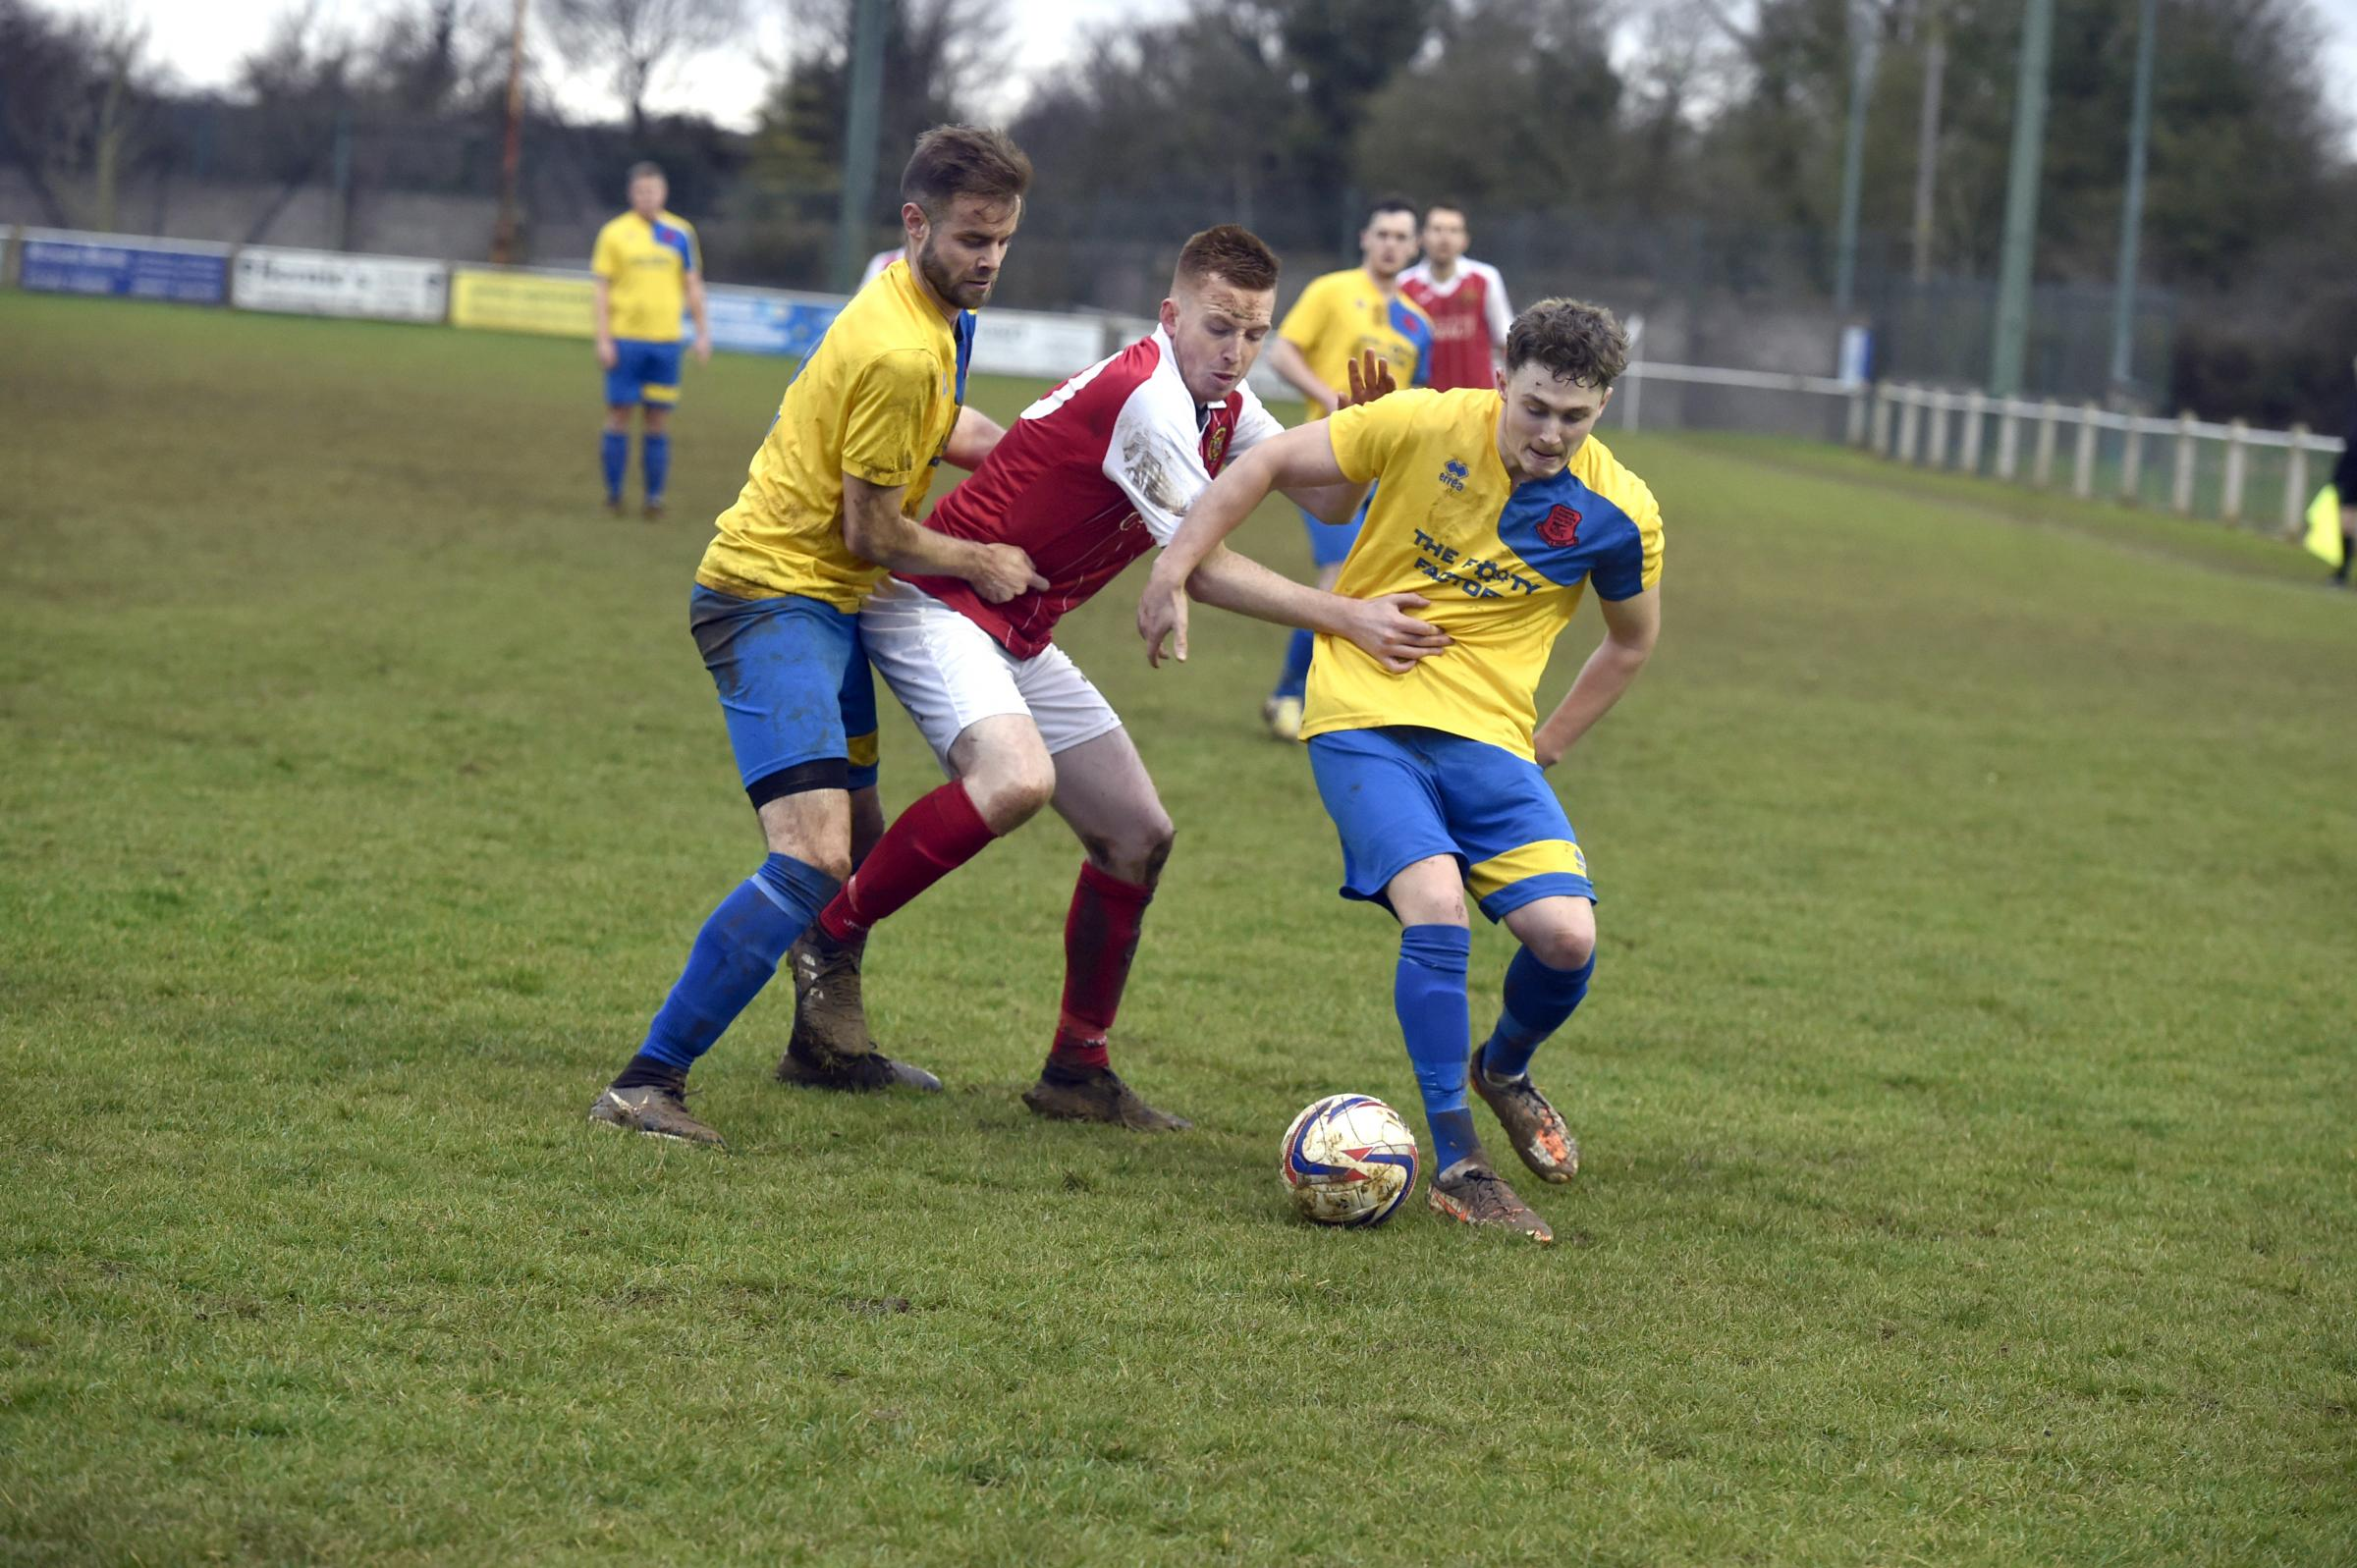 Corsham Town's Leigh Rogers (yellow) on the ball against Bishops Lydeard at the weekend. PICTURE: DIANE VOSE